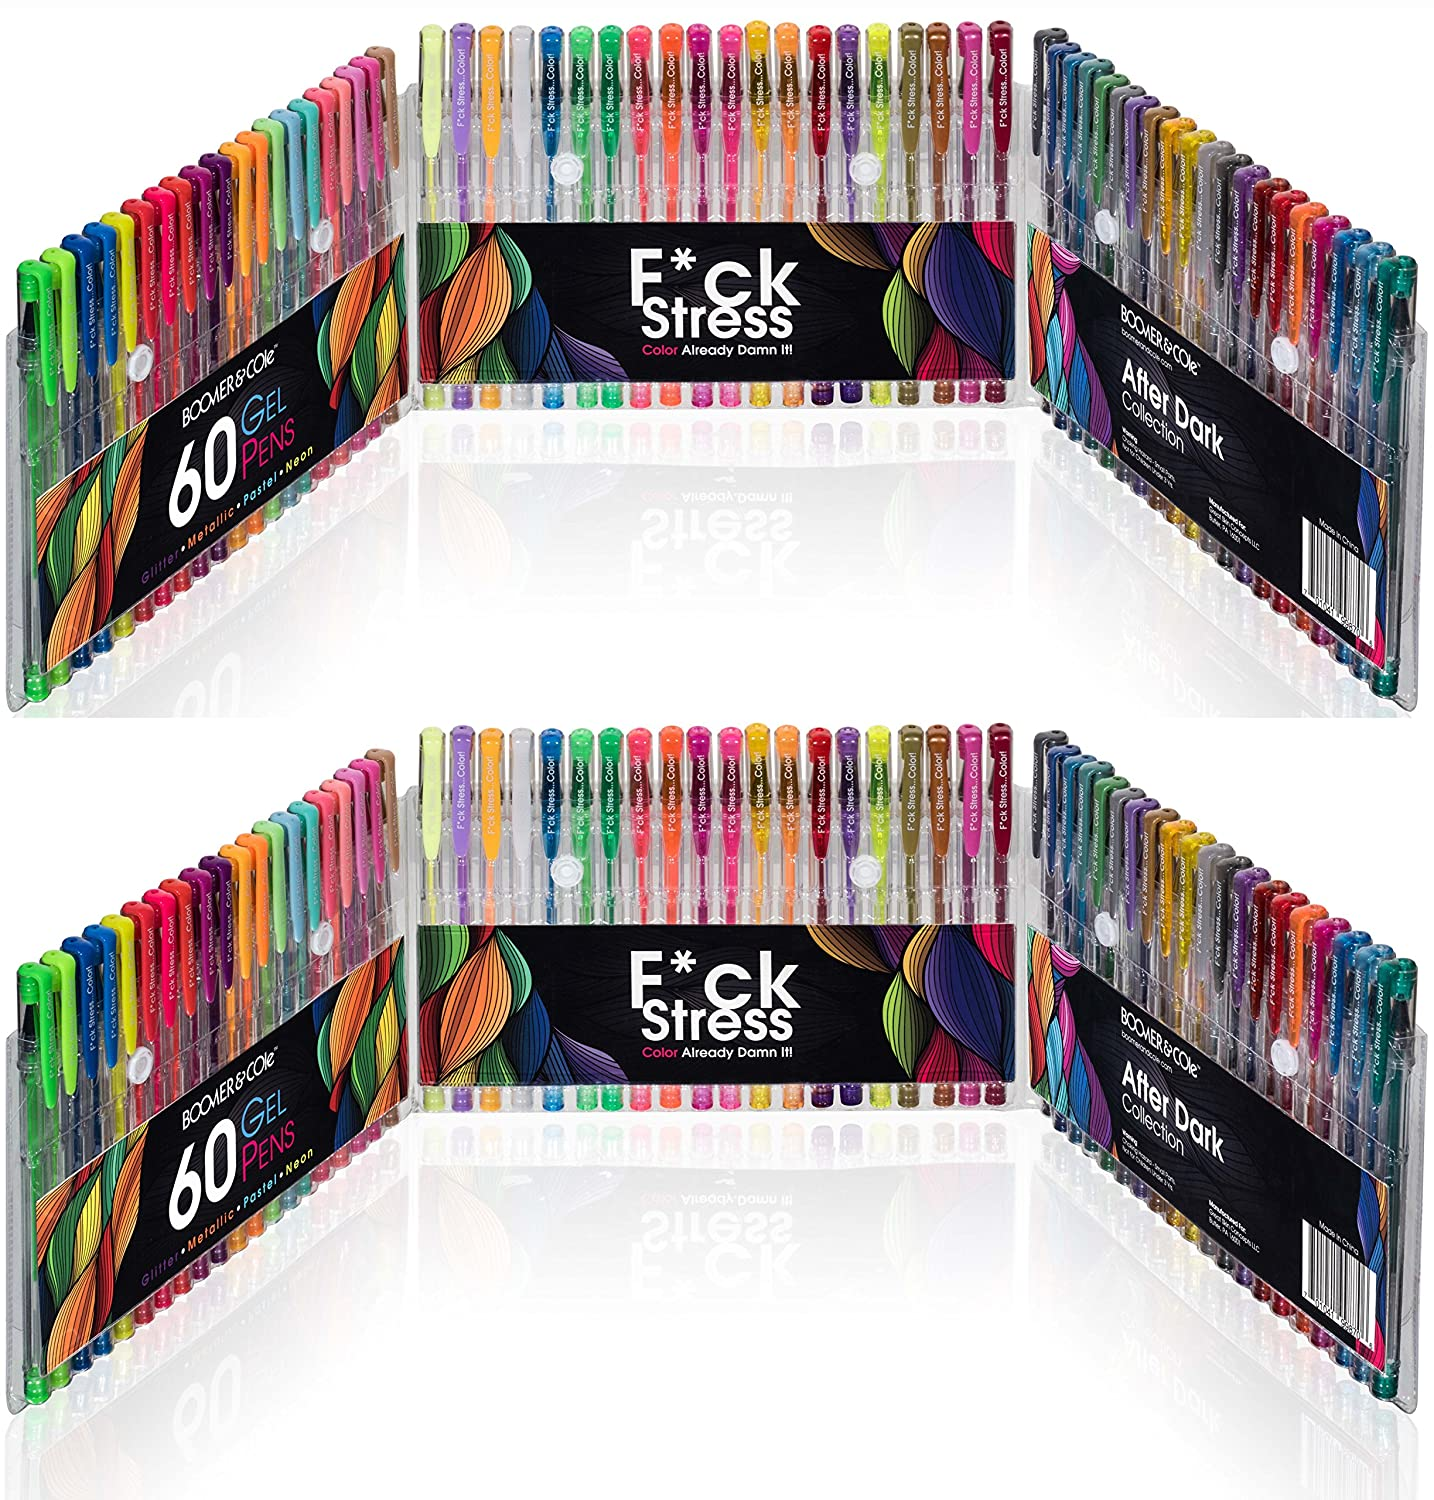 120 Boomer & Cole Gel Pens | Fck Stress Color! | 2 X 60-Piece Set With Case | Assorted Colors Include Metallic, Glitter, Pastel, & Neon